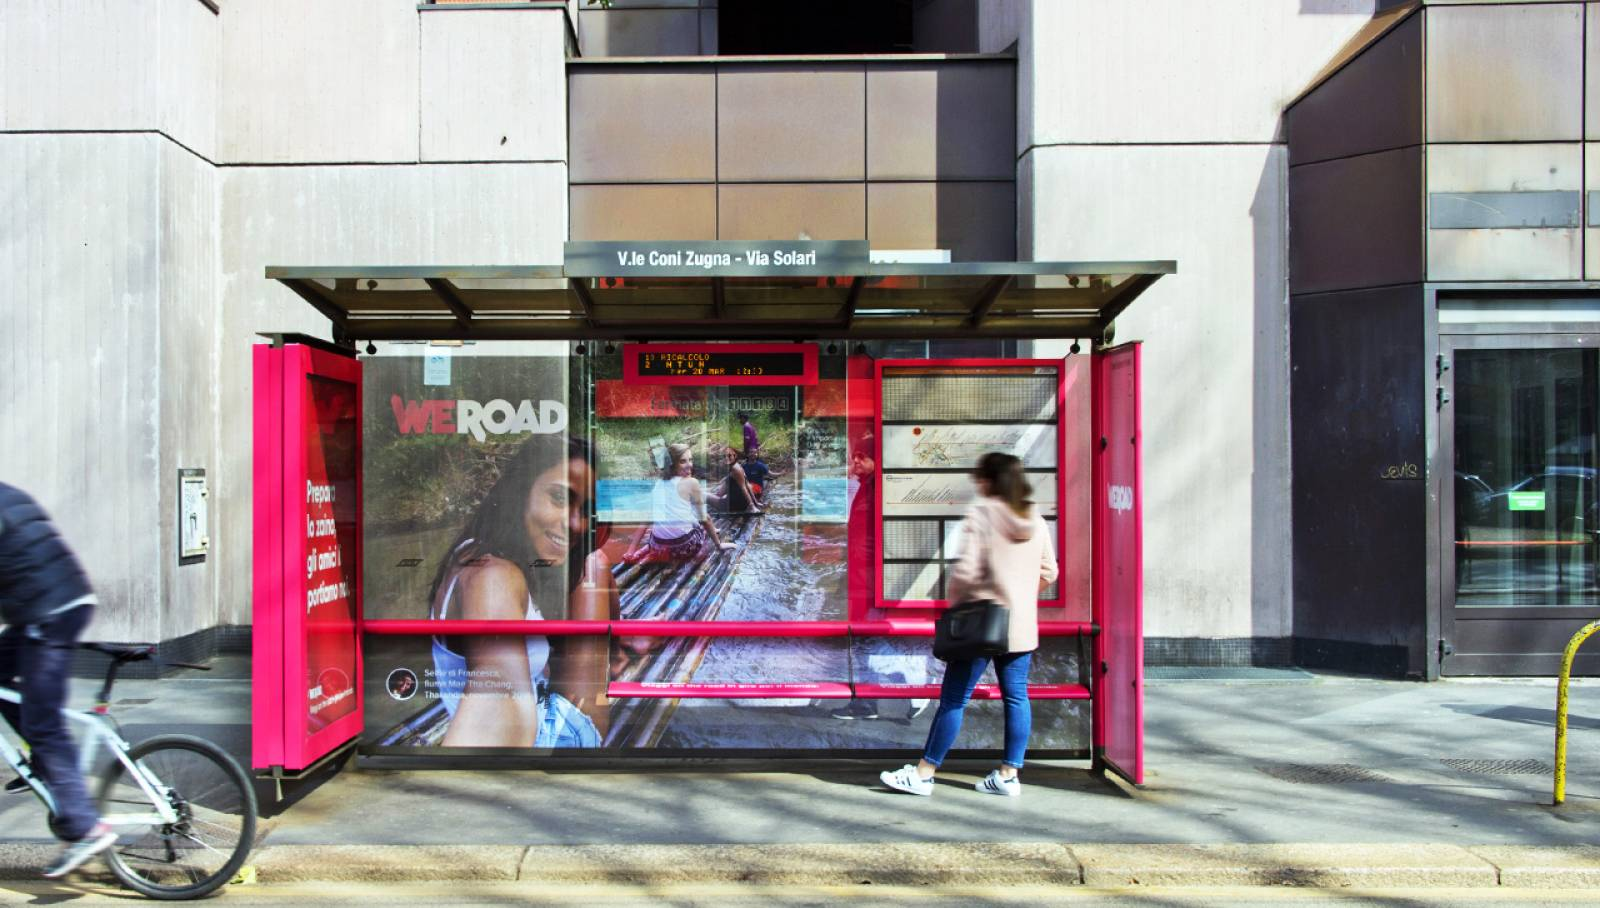 OOH advertising IGPDecaux Milan Brand Shleters for WeRoad